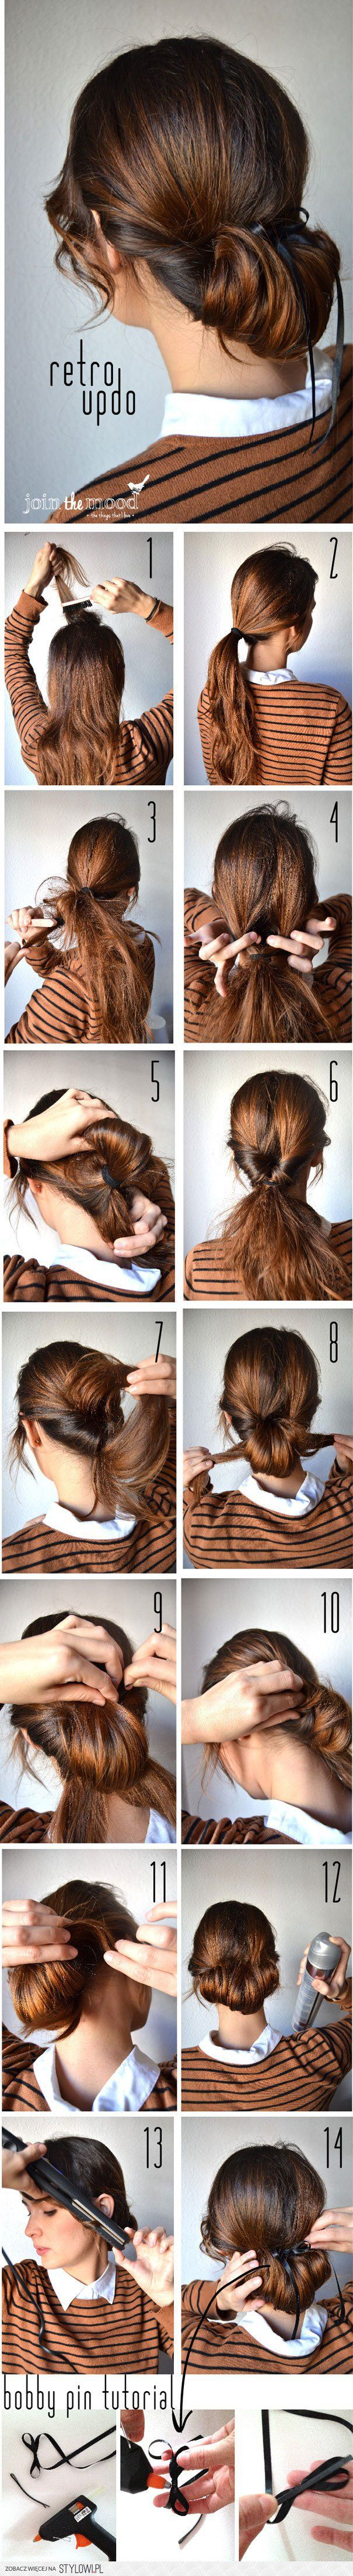 easy hair updo tutorial